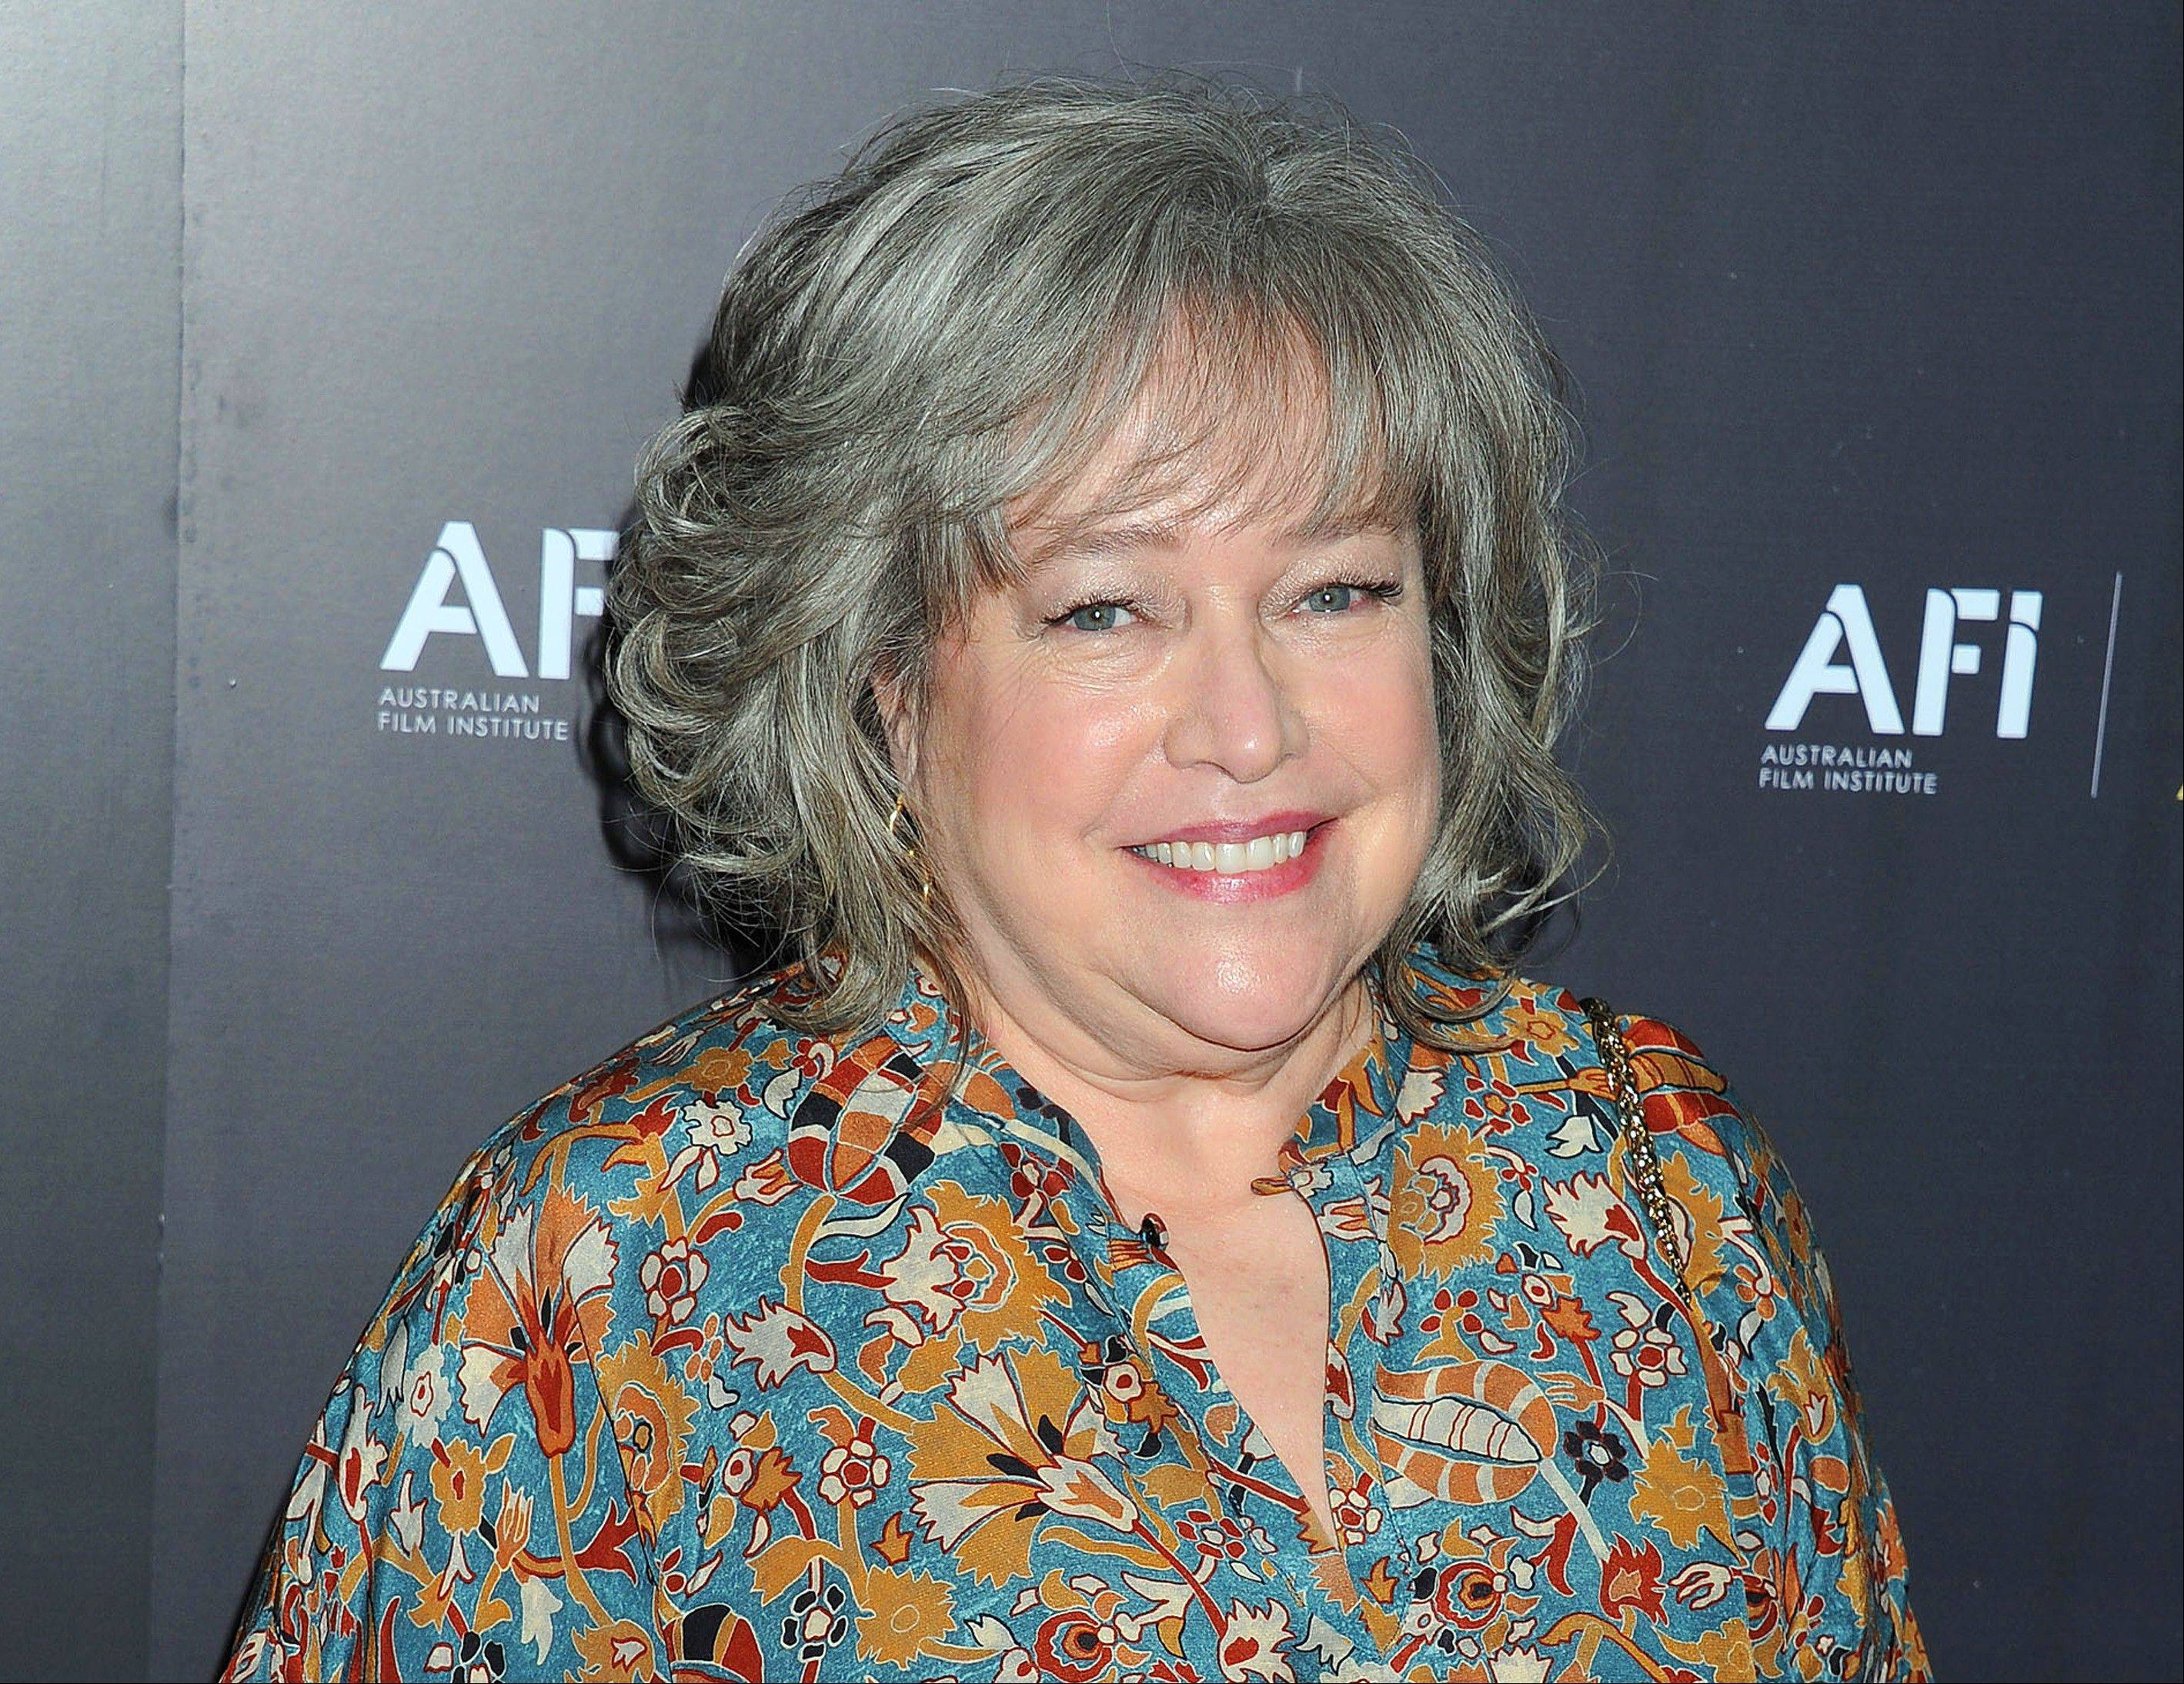 This Jan. 27, 2012, file photo shows actress Kathy Bates arriving at the Australian Academy of Cinema and Television Arts Awards at the Soho House, in Los Angeles. Bates, 64, says she is recovering from a double mastectomy.